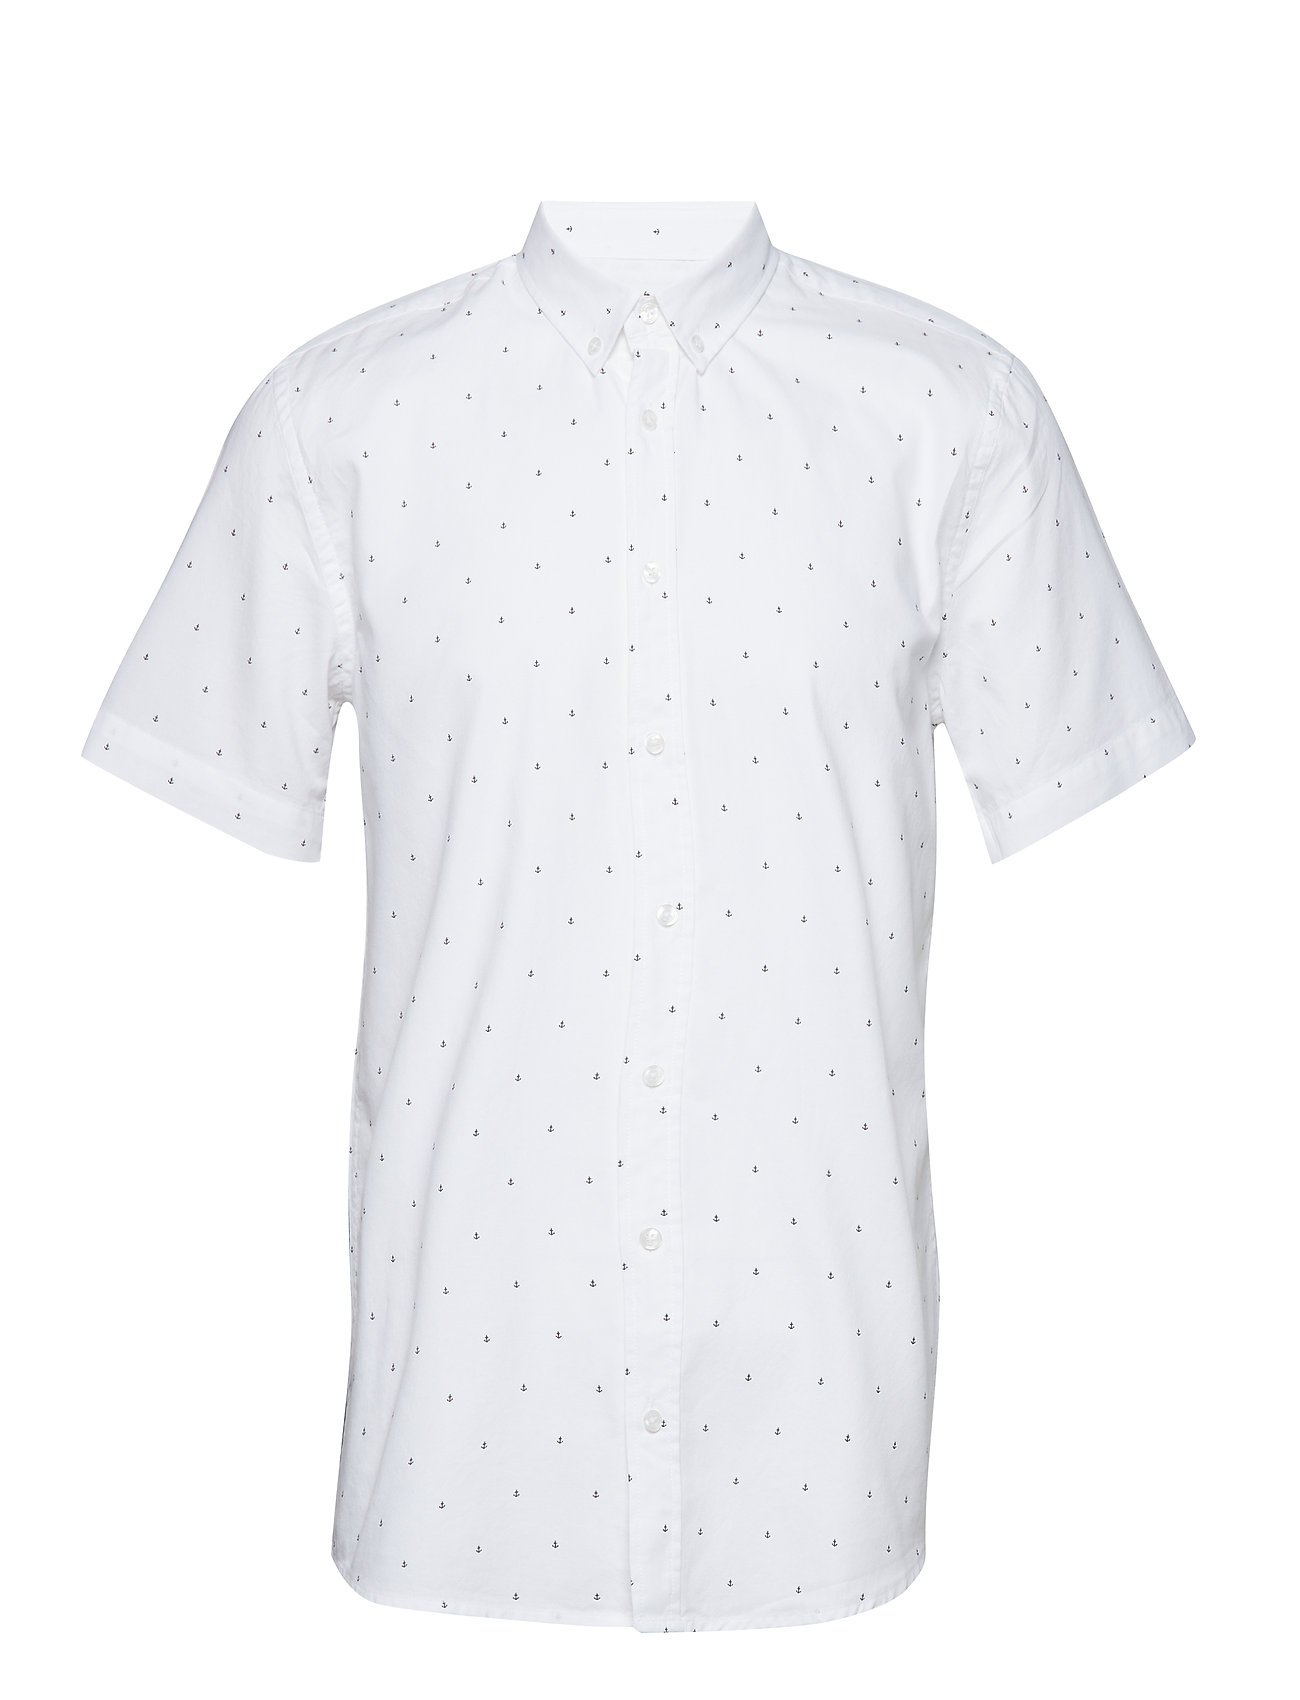 Makia ANCHORS SS SHIRT - WHITE